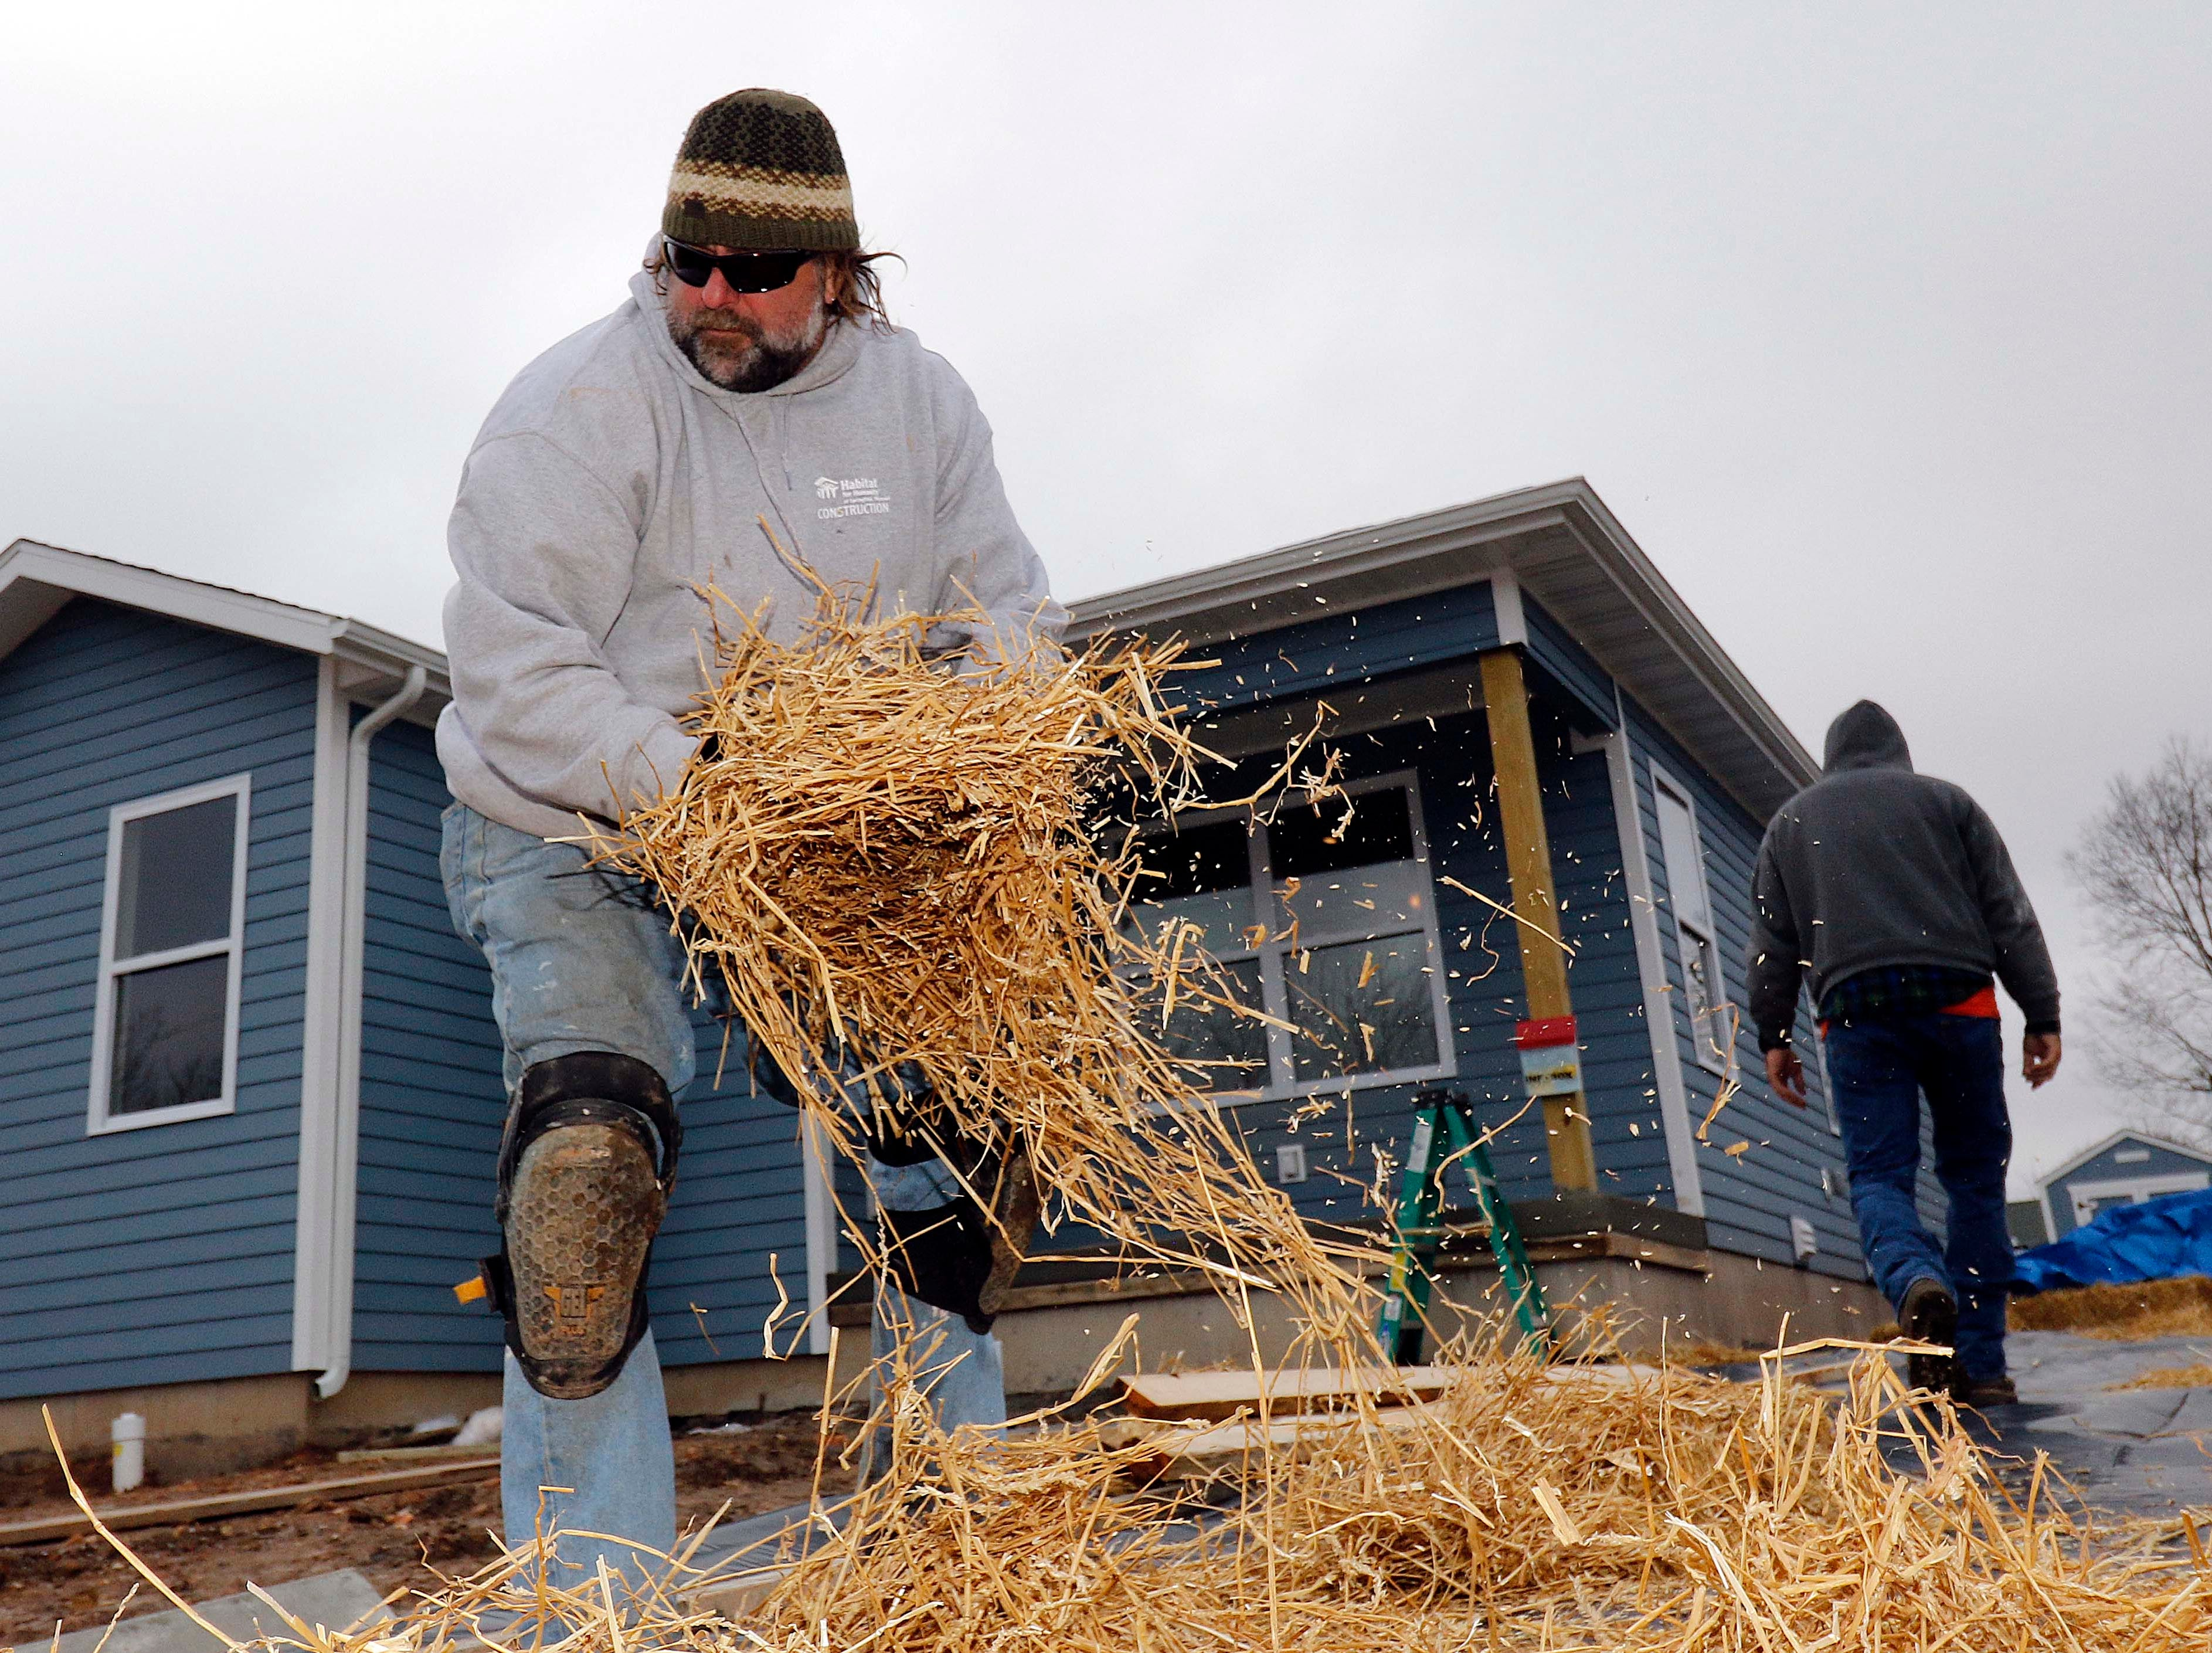 Kurt Jentzsch seen here covering the driveway at the new Habitat for Humanity house on North Main in Springfield on January 18, 2019.